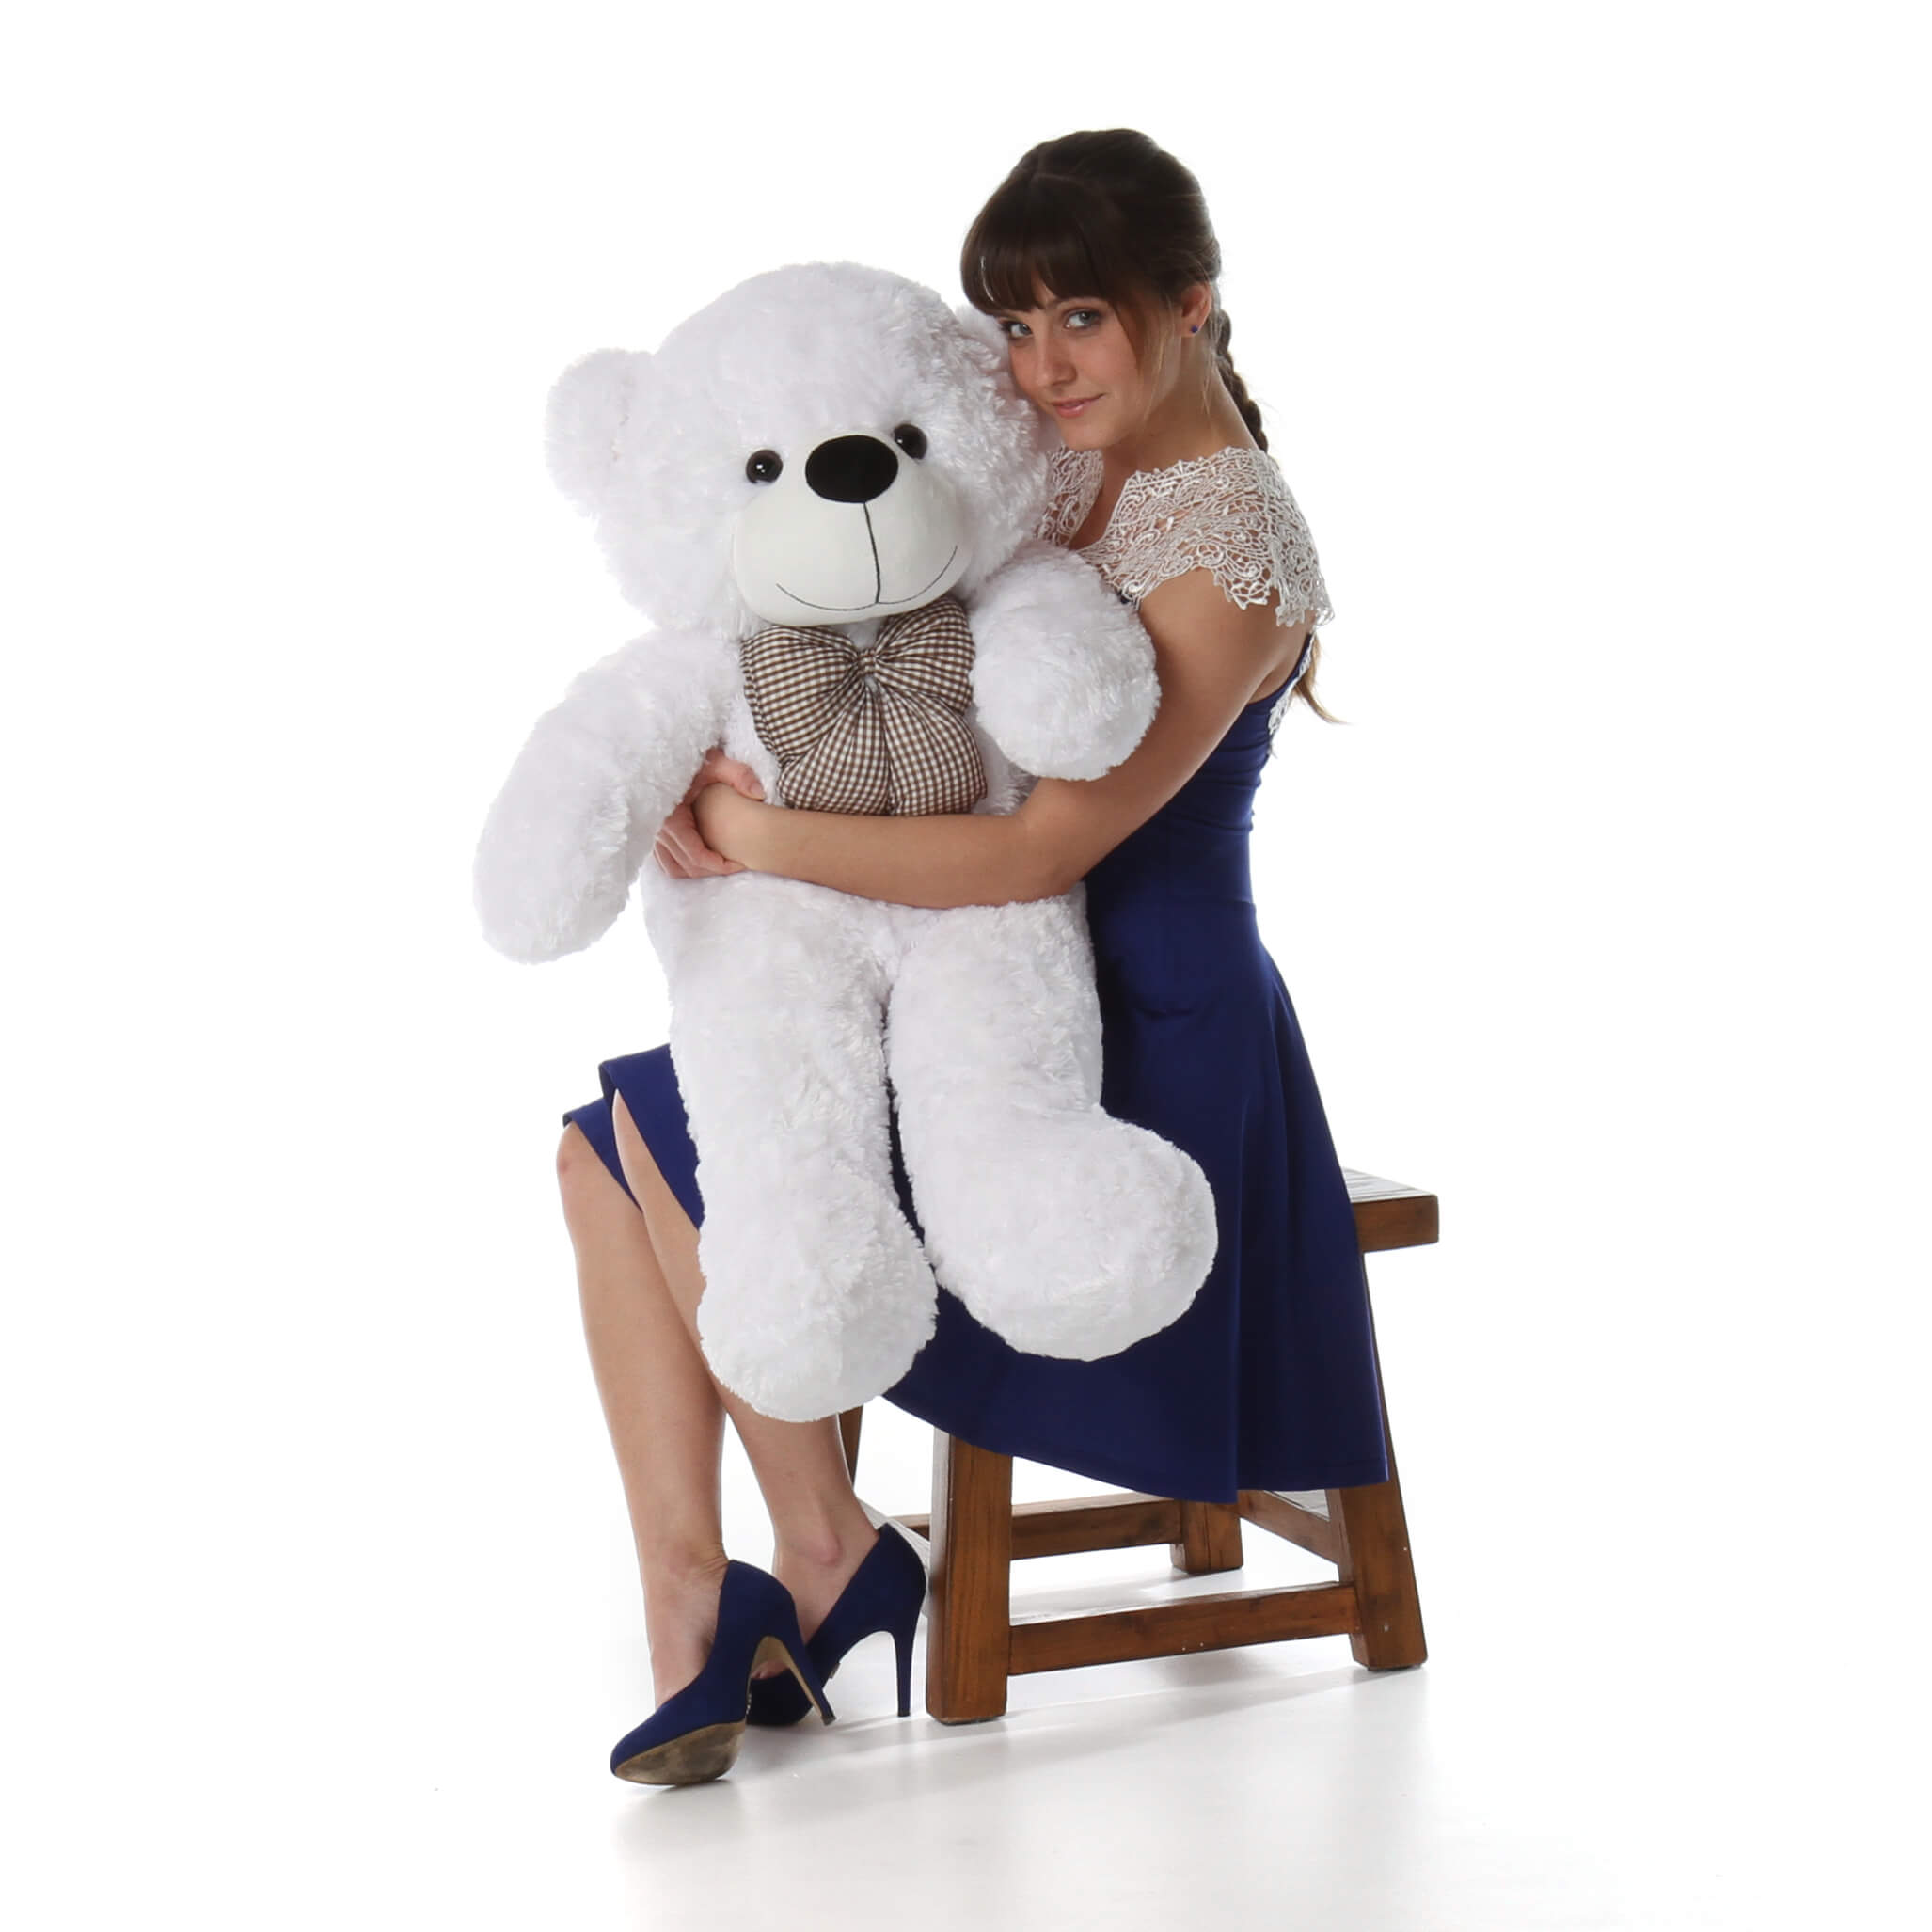 38in-huge-white-teddy-bear-huggable-and-soft-coco-cuddles-1.jpg